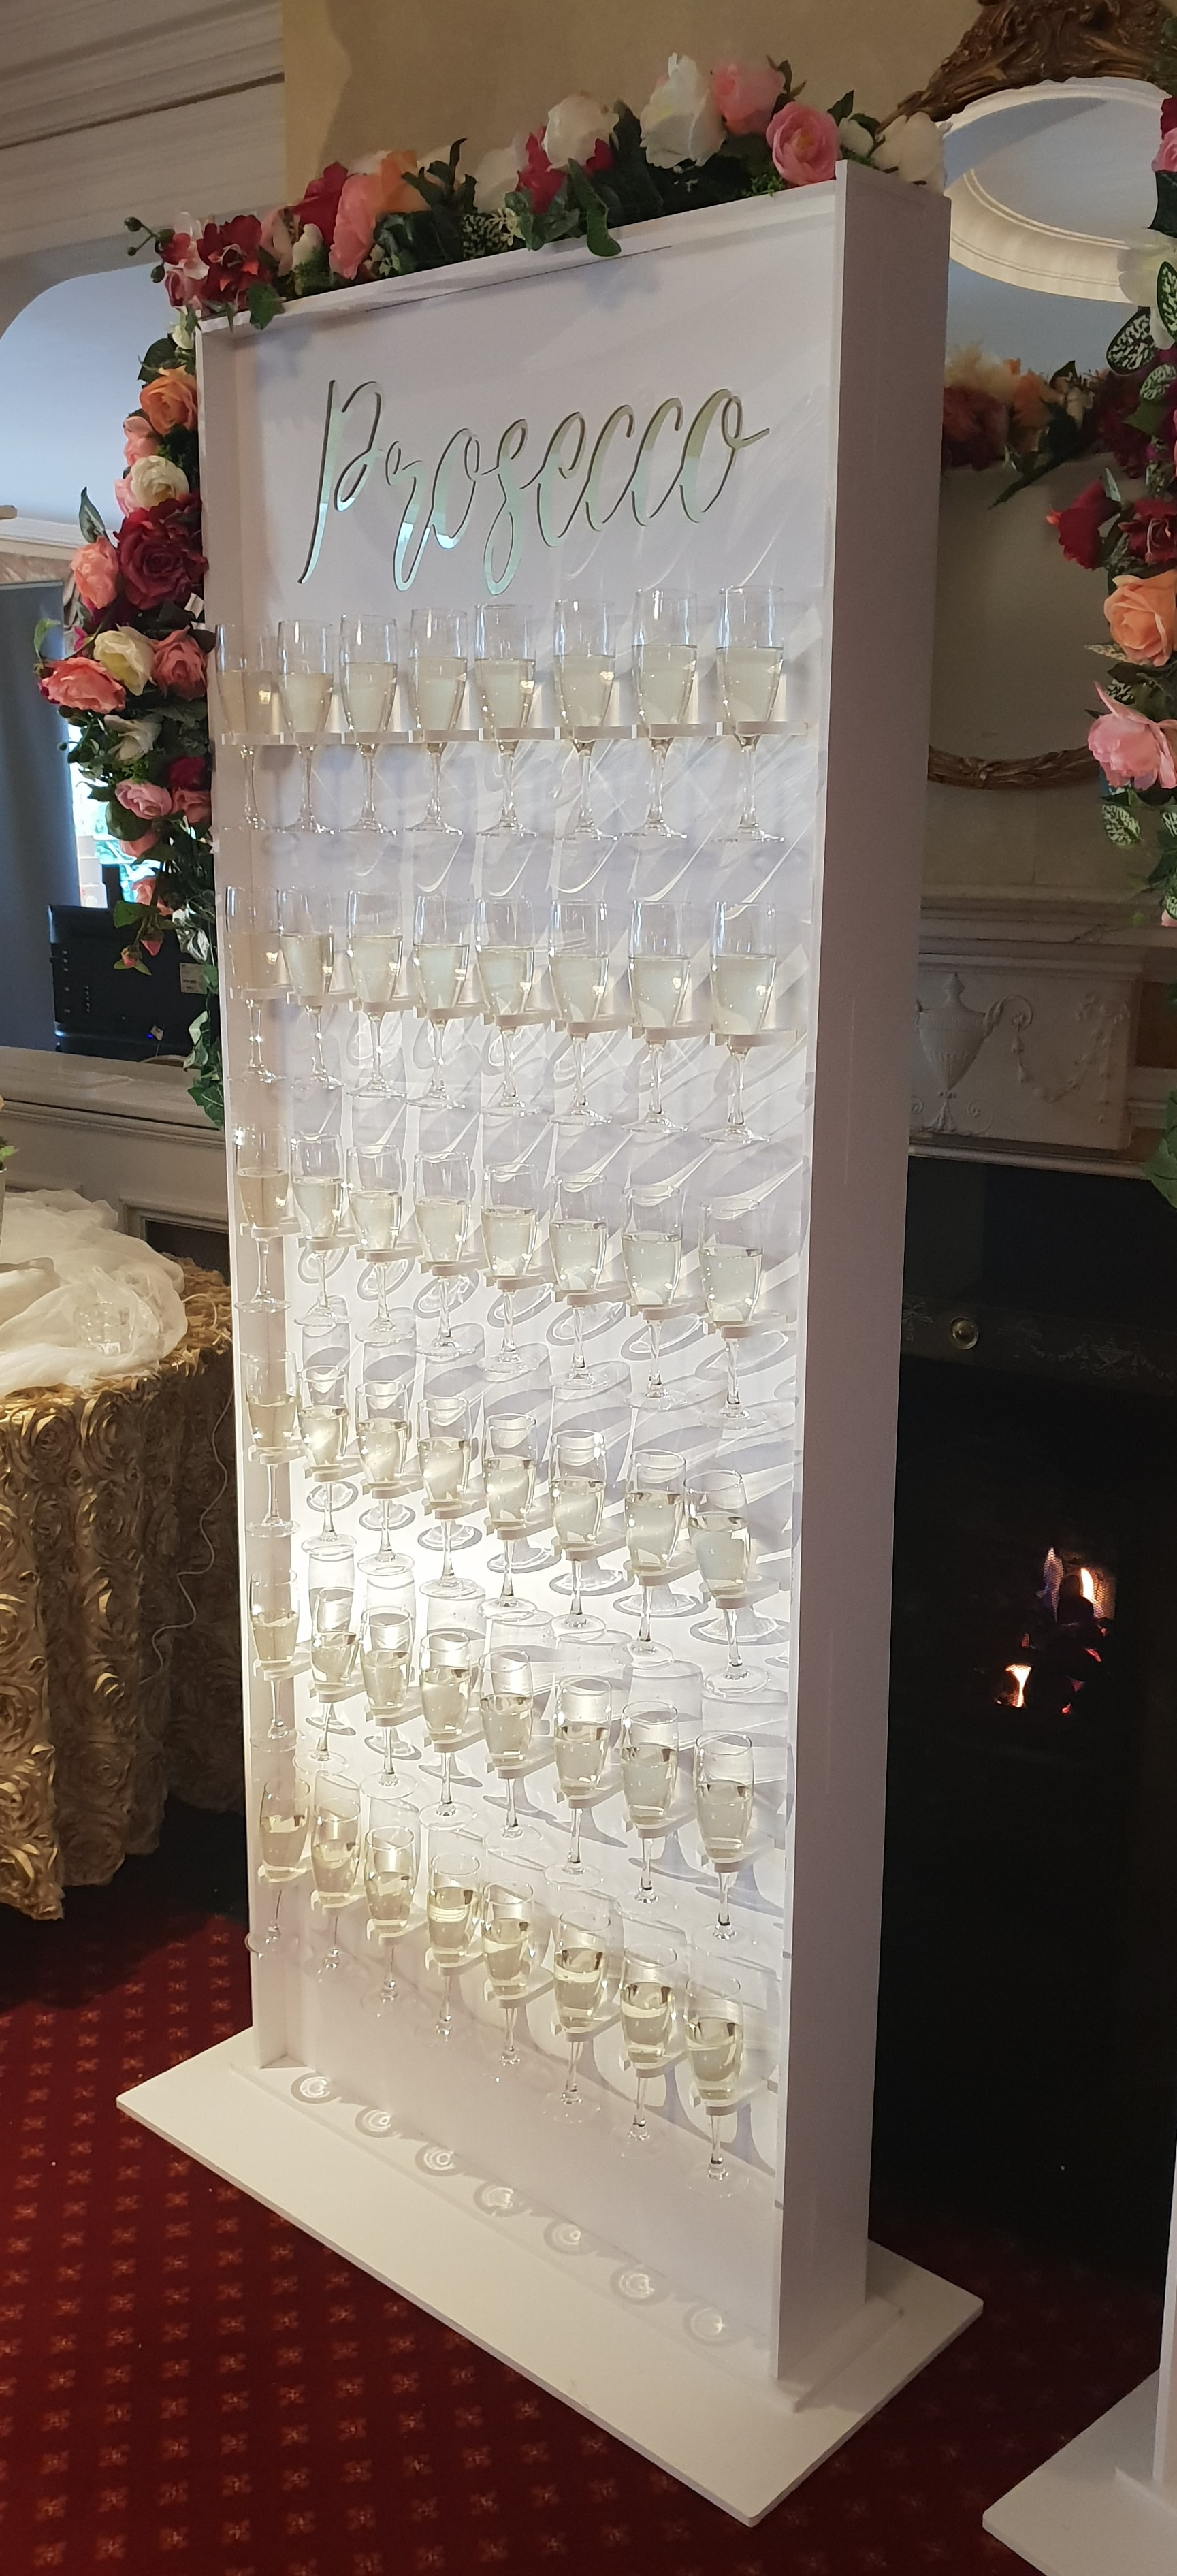 Prosecco Wall Carolyn S Sweets Chocolate Fountains